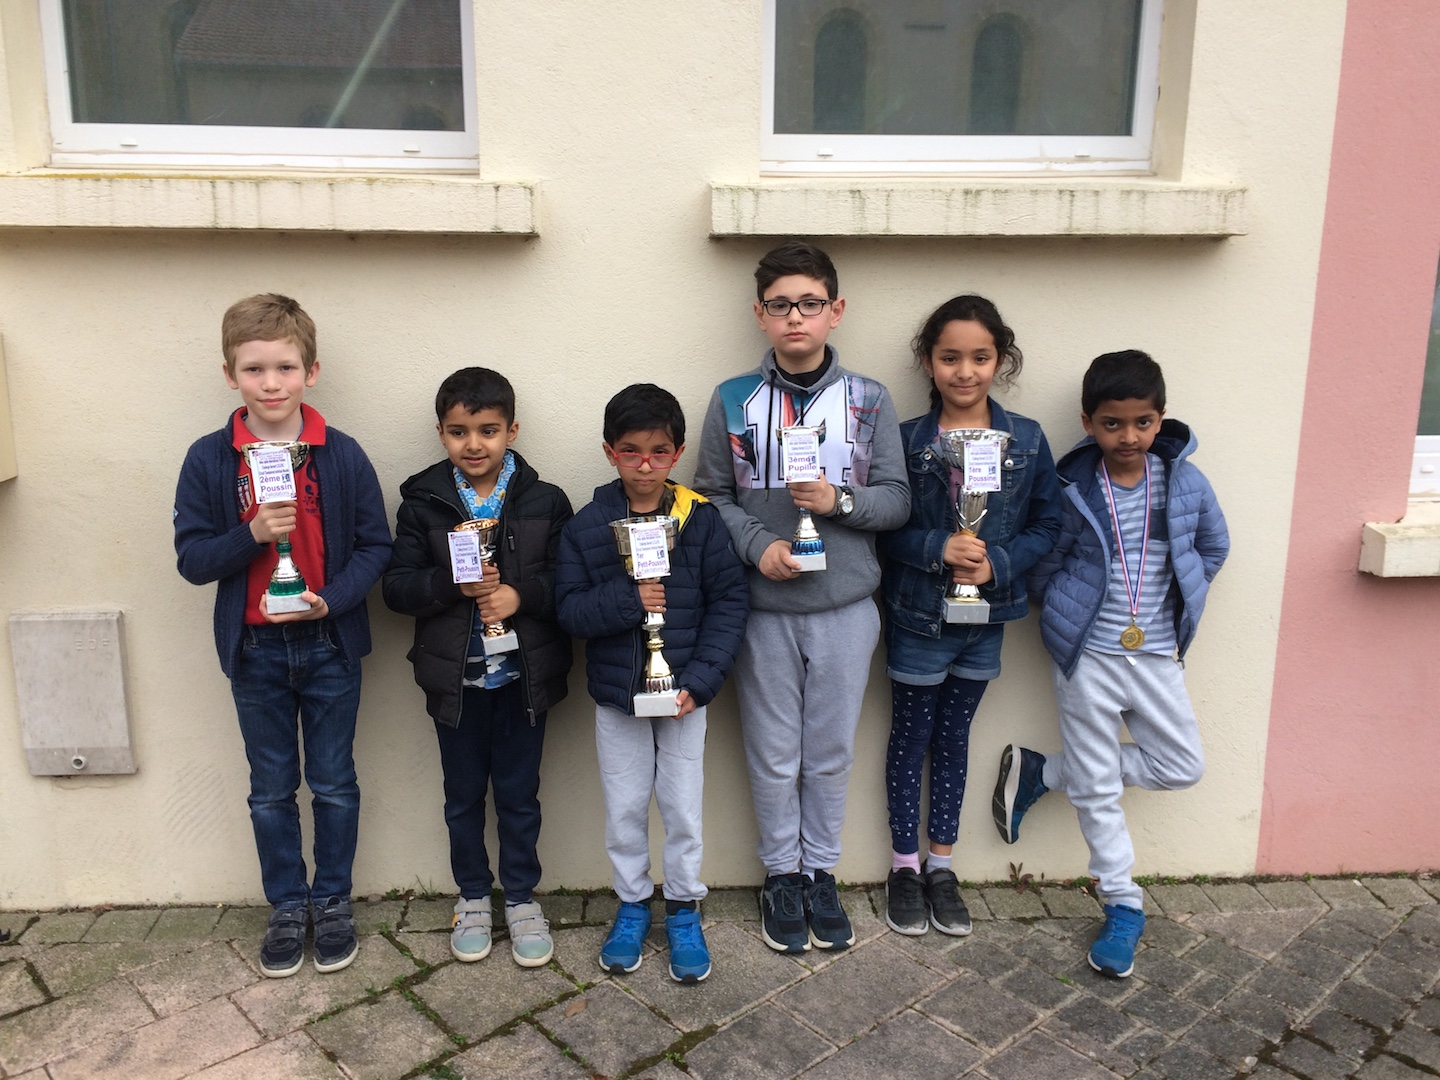 Results of the tournament in Tressange - 7th April